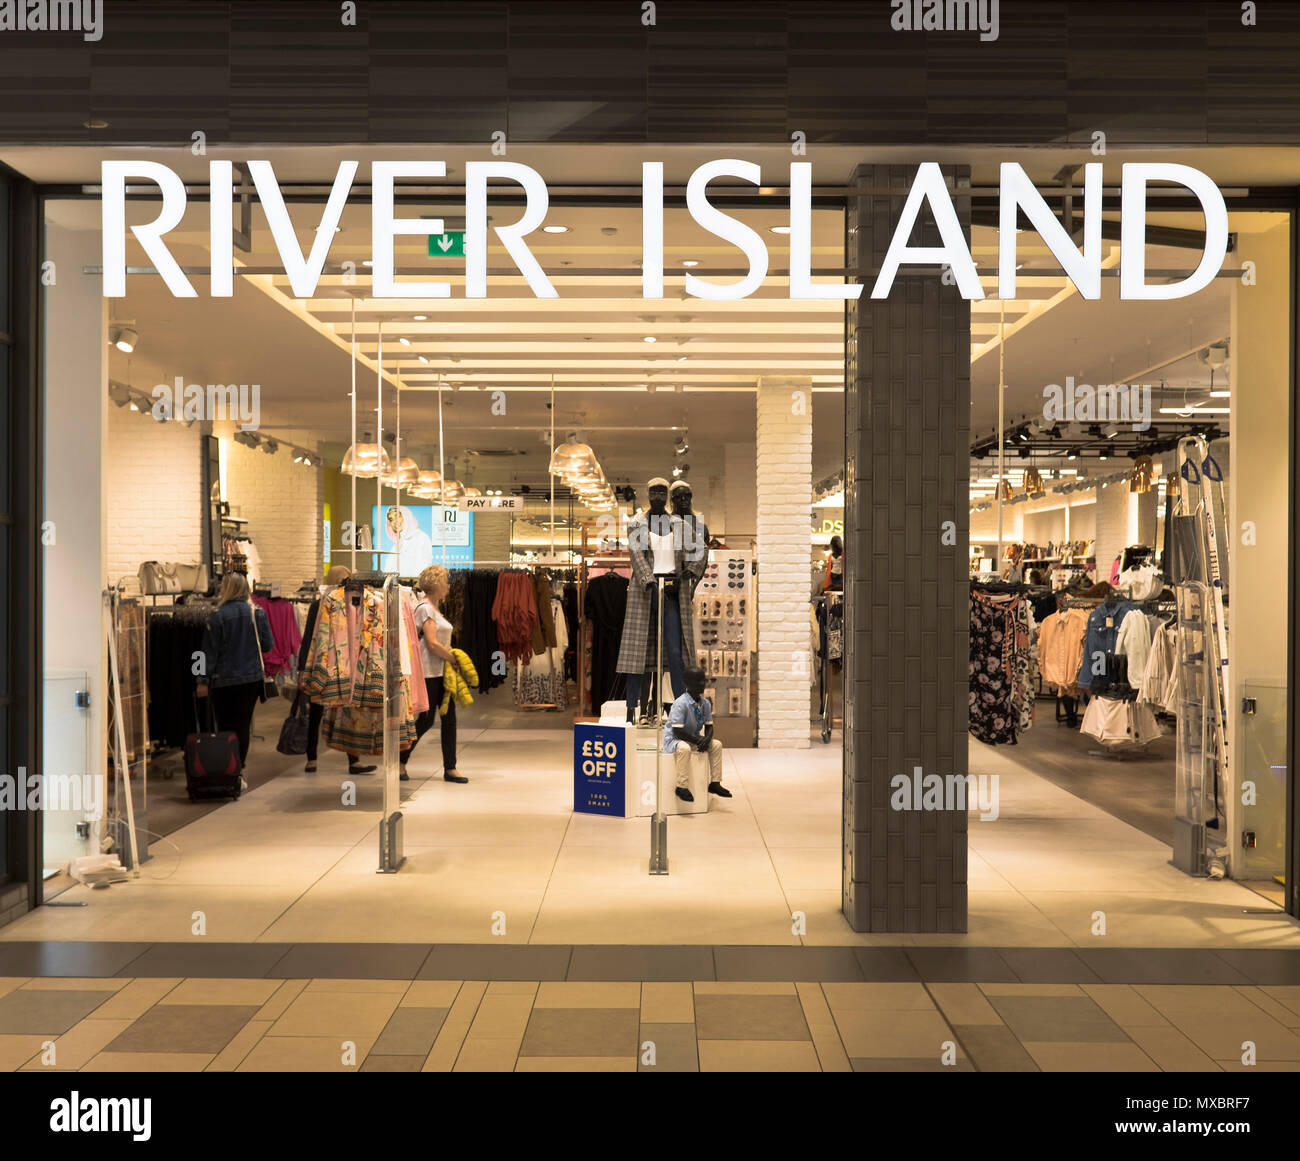 af7a5cd61 dh River Island store SHOPS UK Aberdeen Shop Union Square clothing front shops  clothes